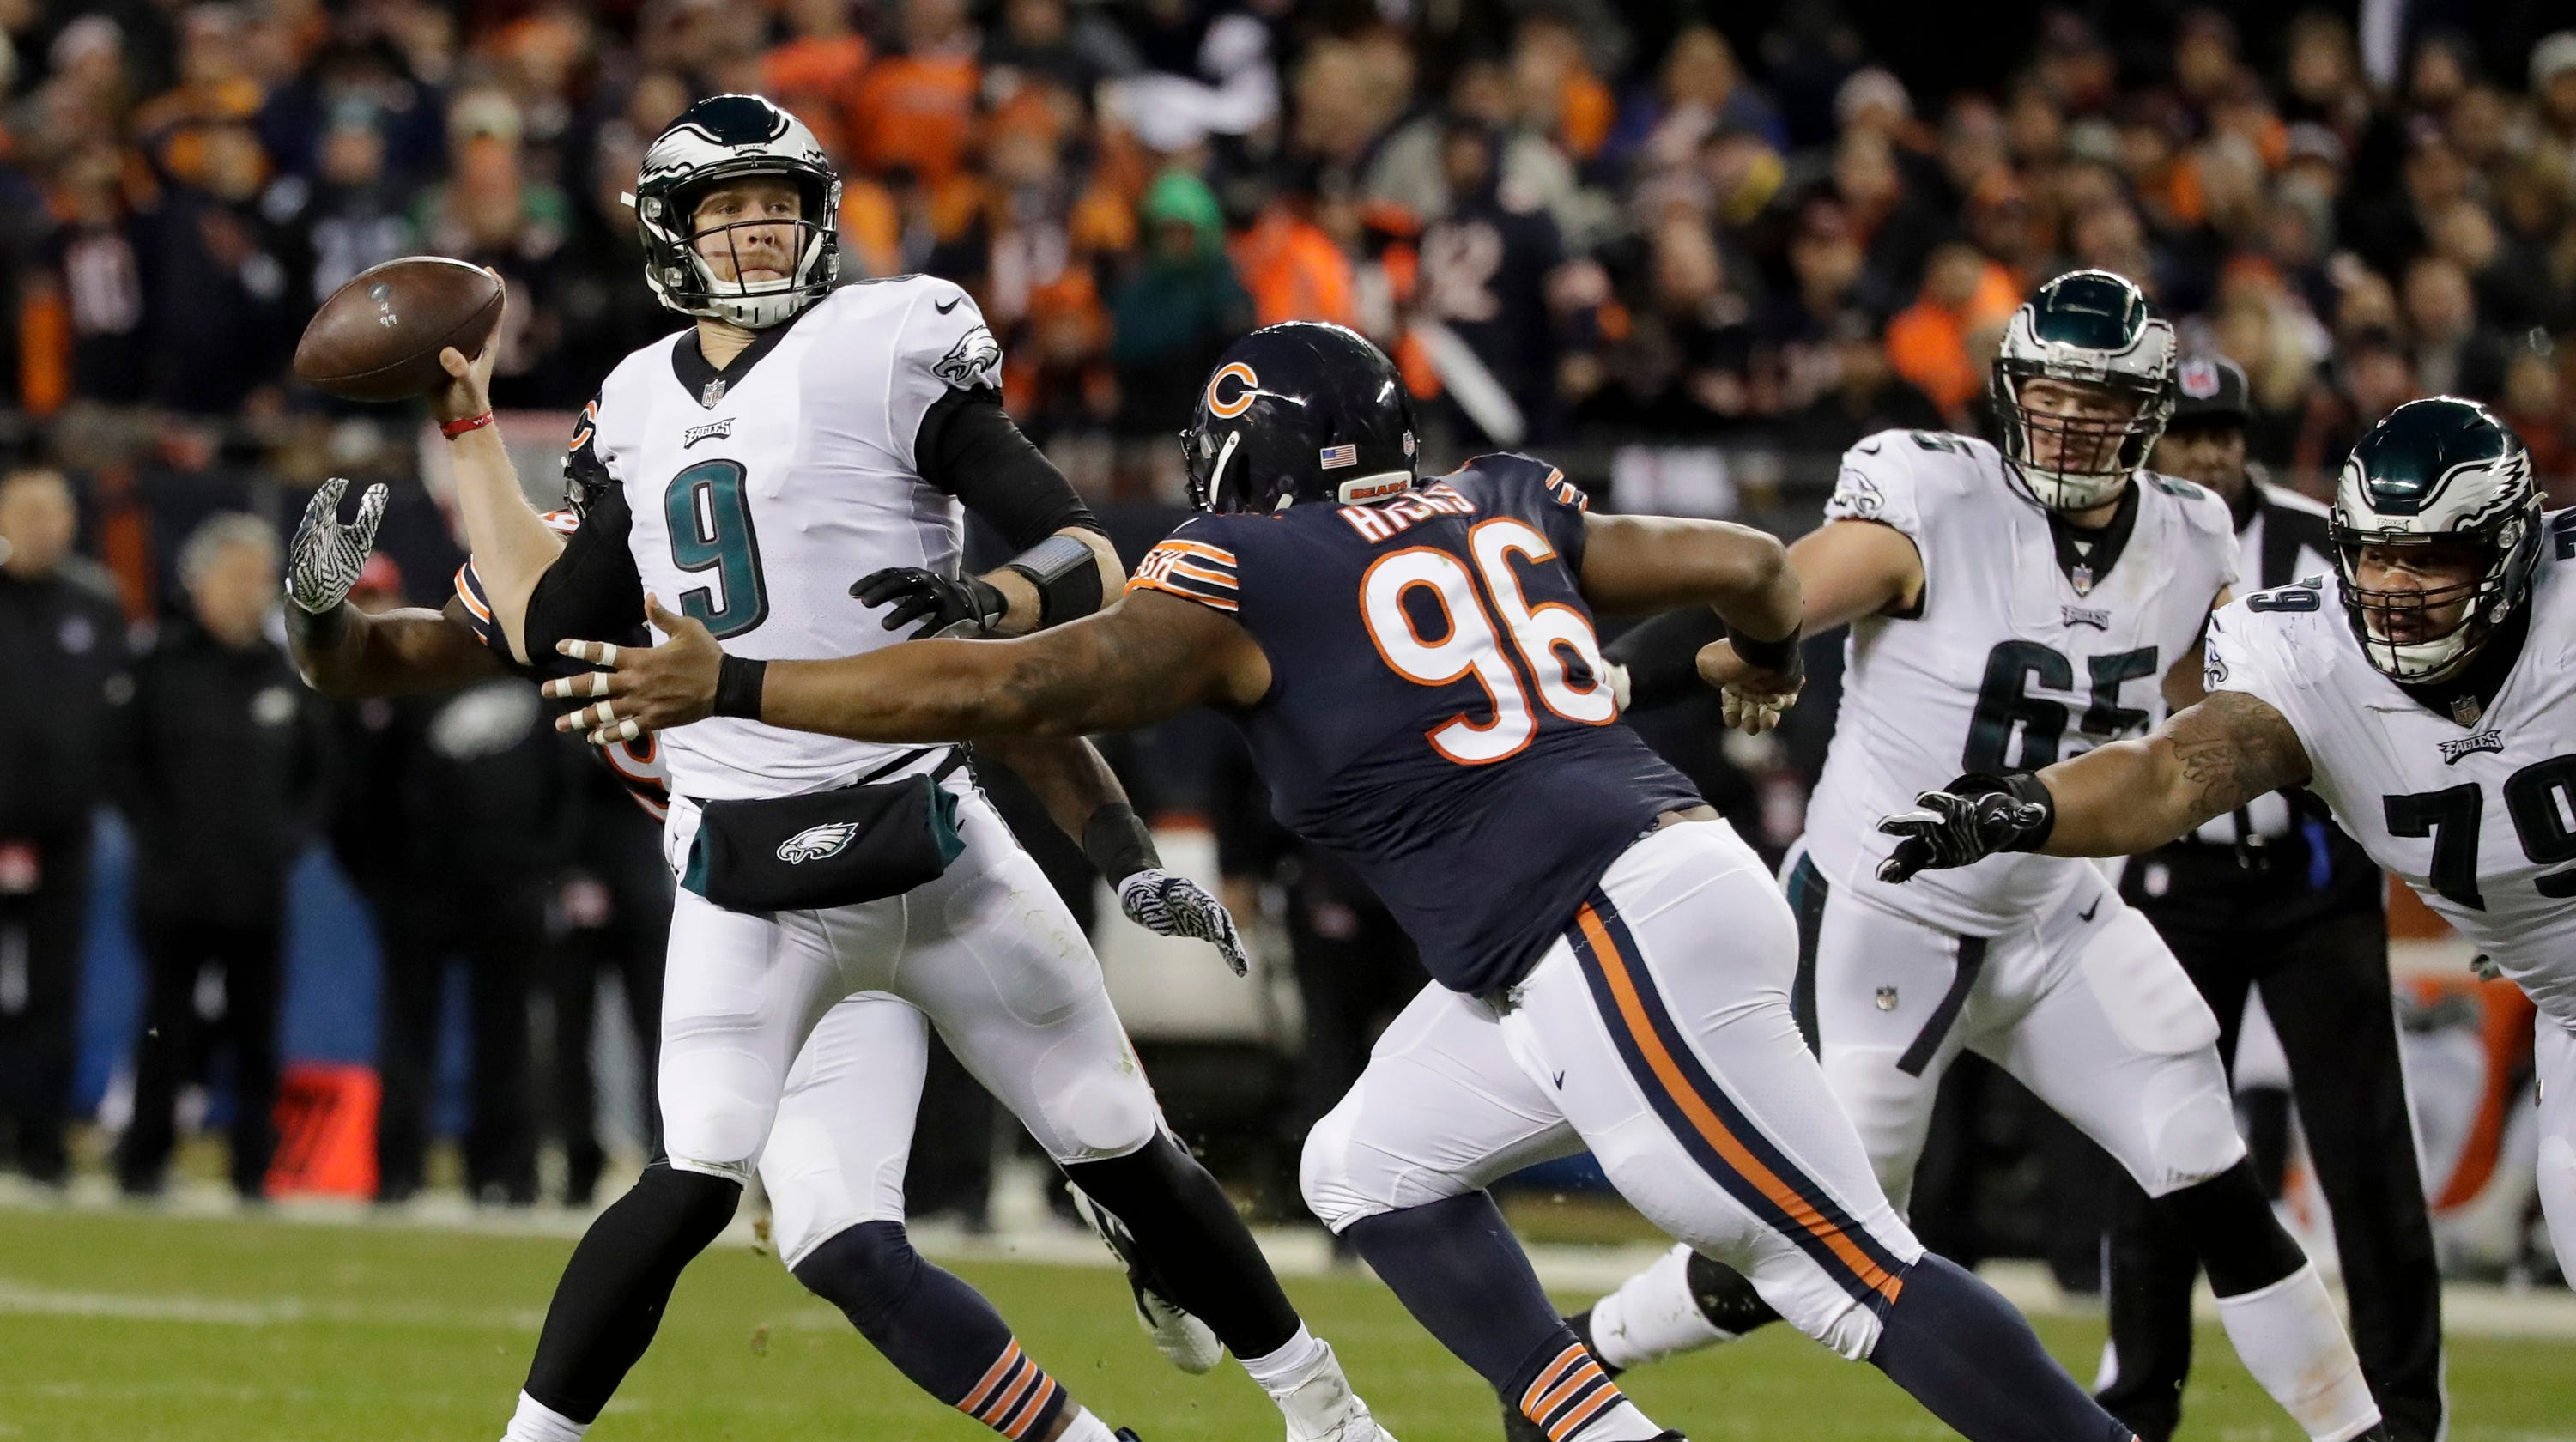 d450a50bef4 Foles to Tate for game-winning TD just one example of Eagles  toughness